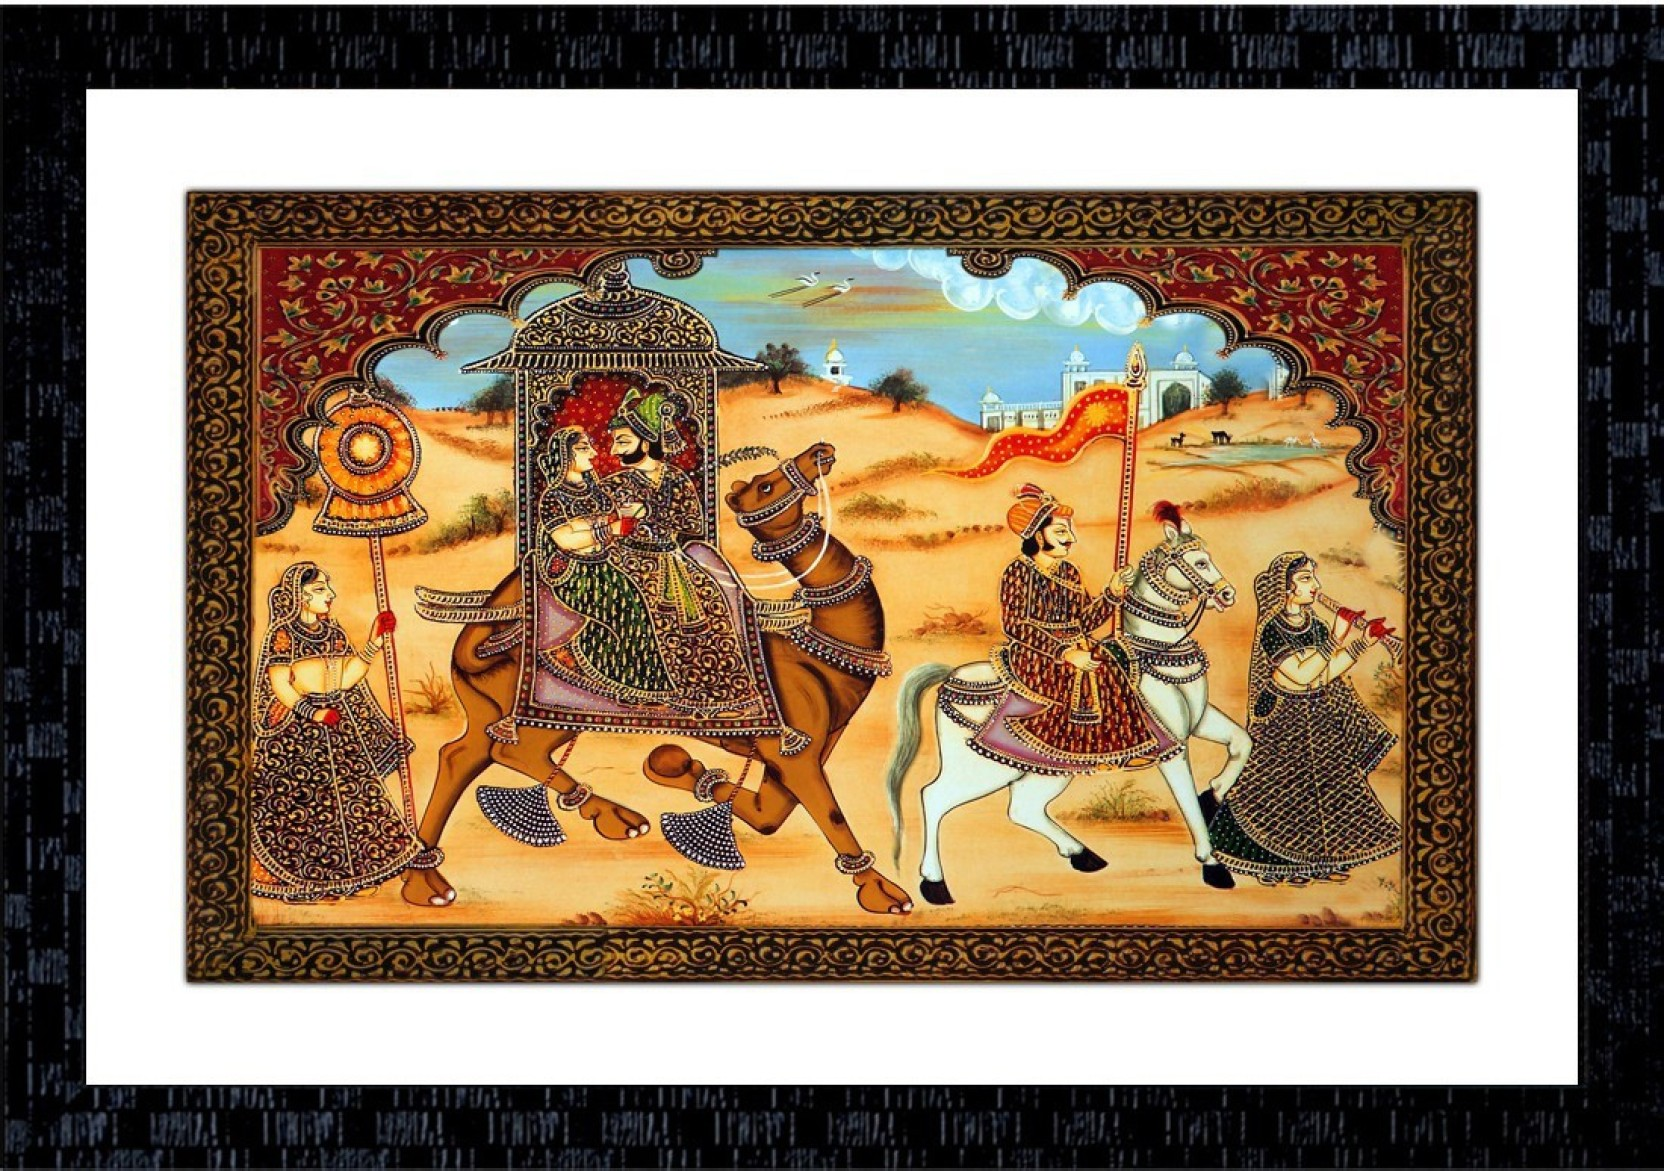 Janki online modern art canvas rajasthani miniature large glass wall paintings with frame for home decoration item for bedroom for sale canvas 14 inch x 20